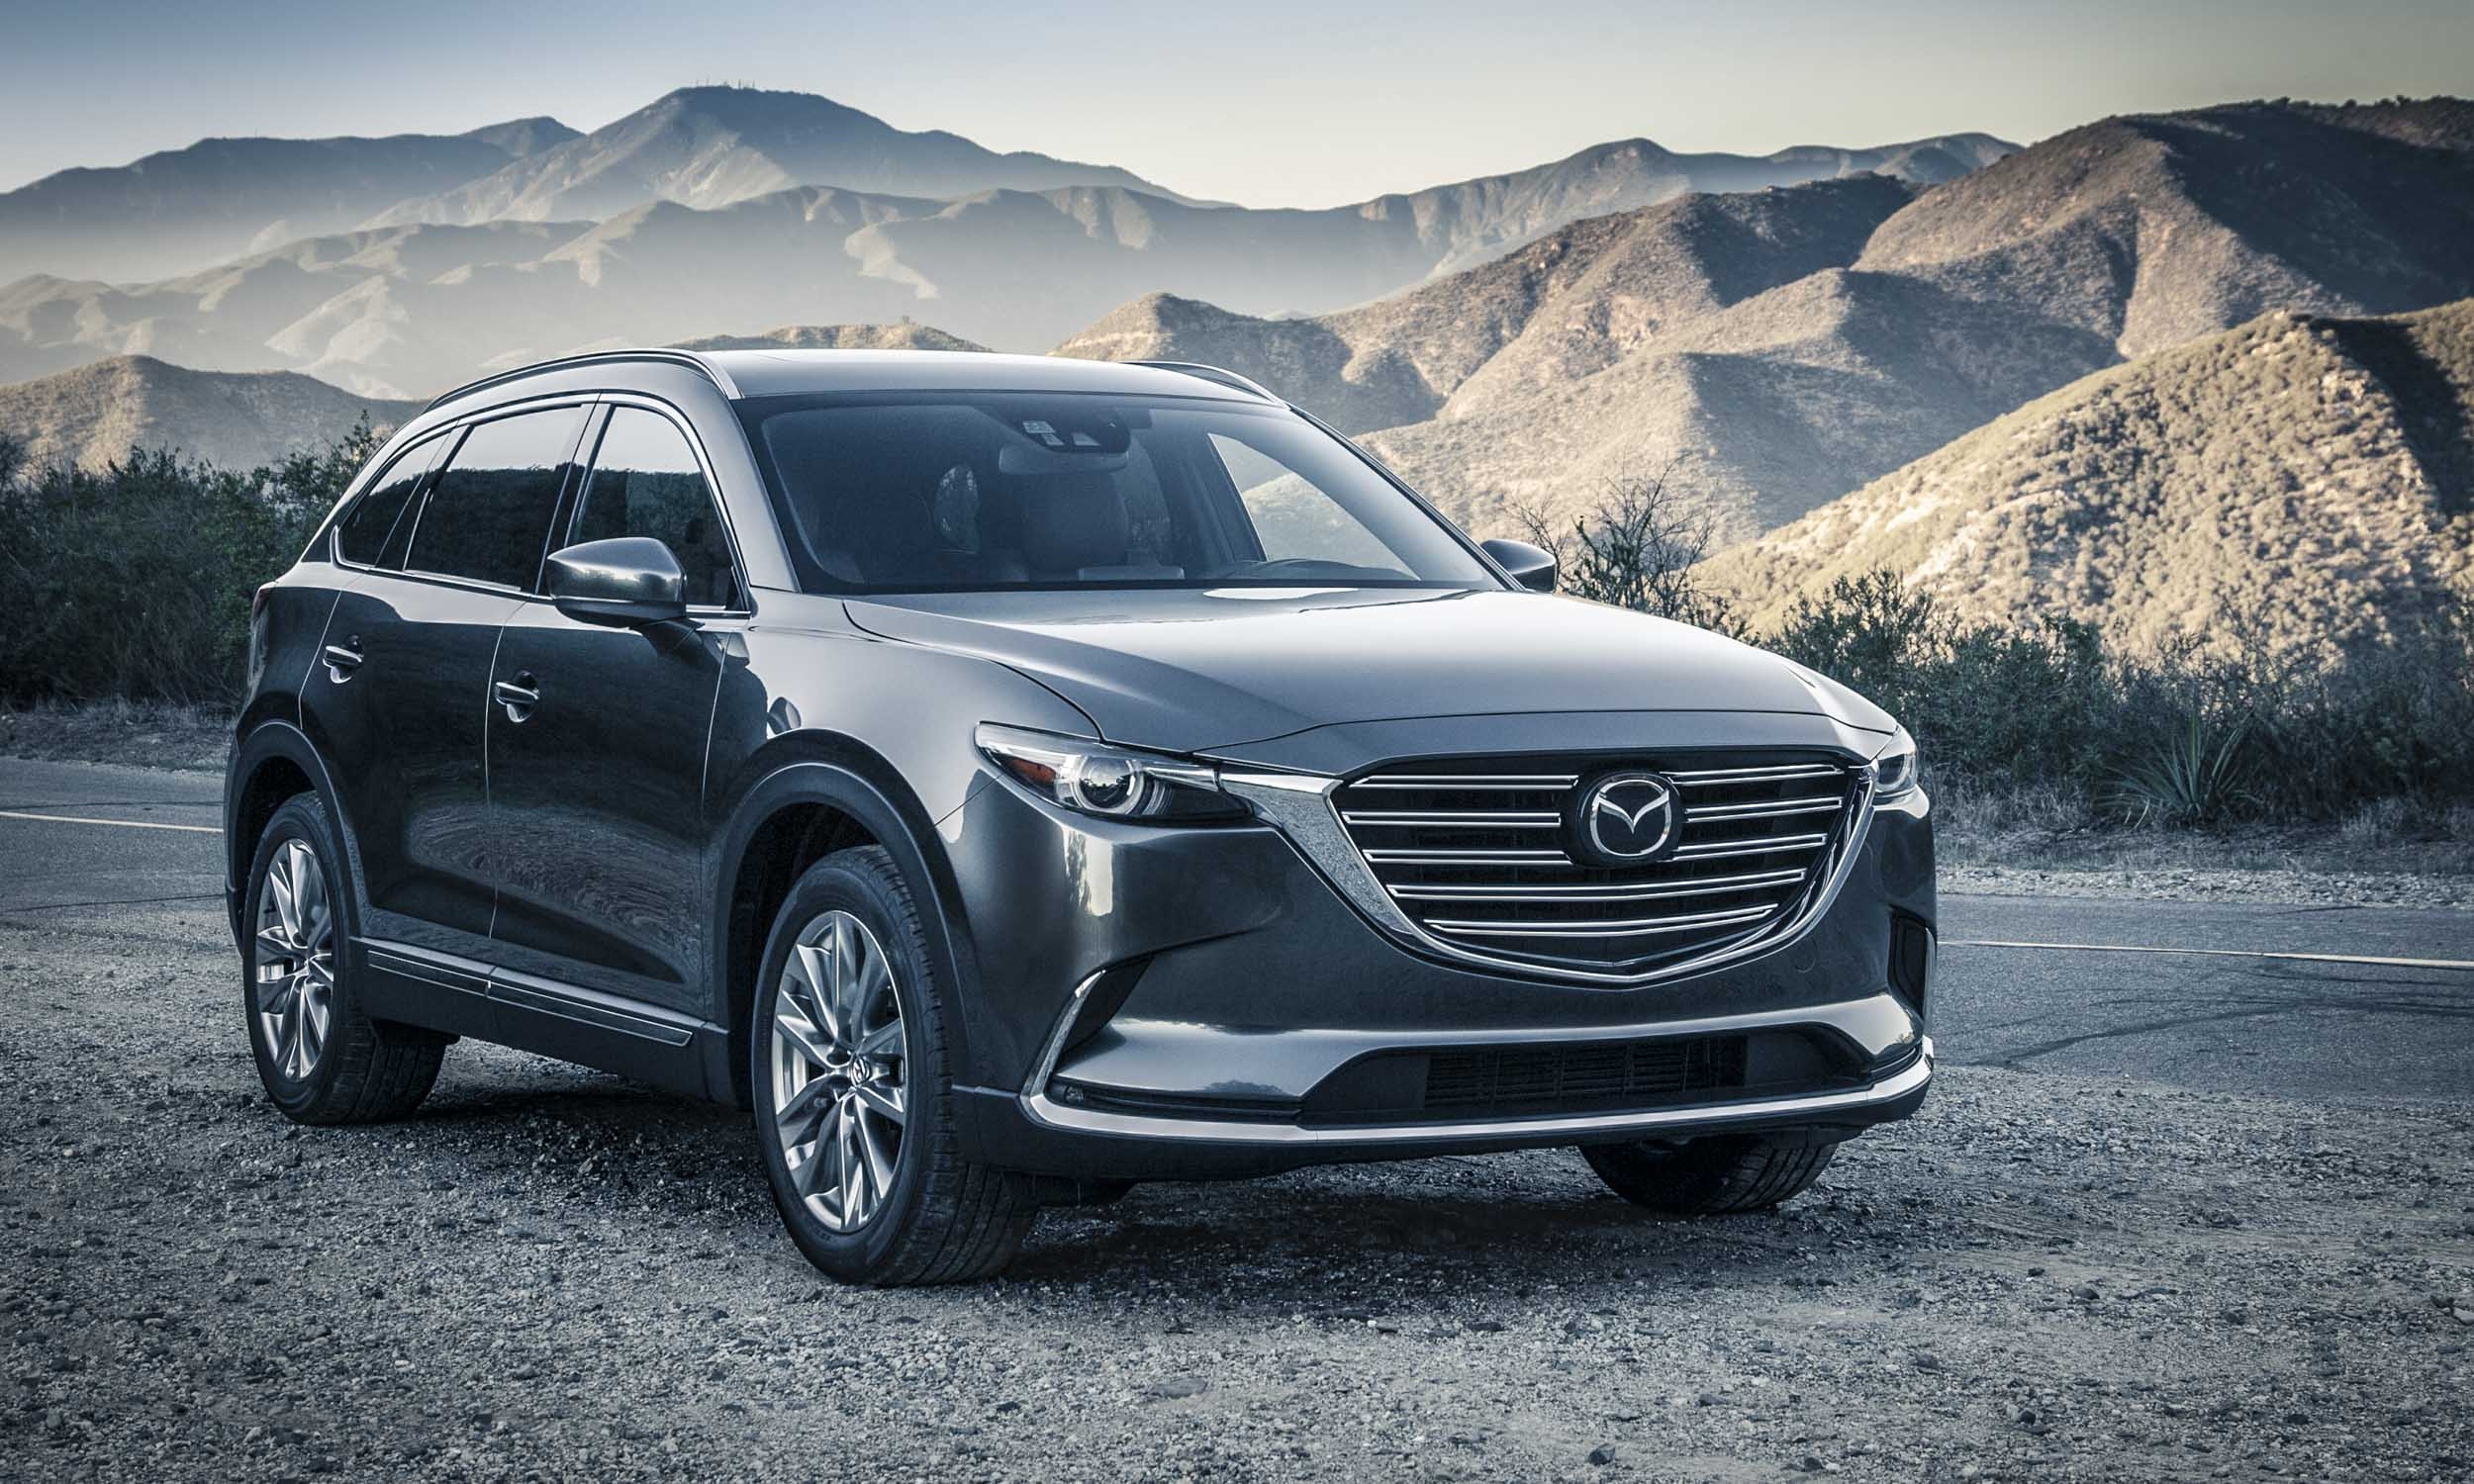 mazda a gadget car s video not mazdas rsreviewmazdamx videos review is roadshow cx